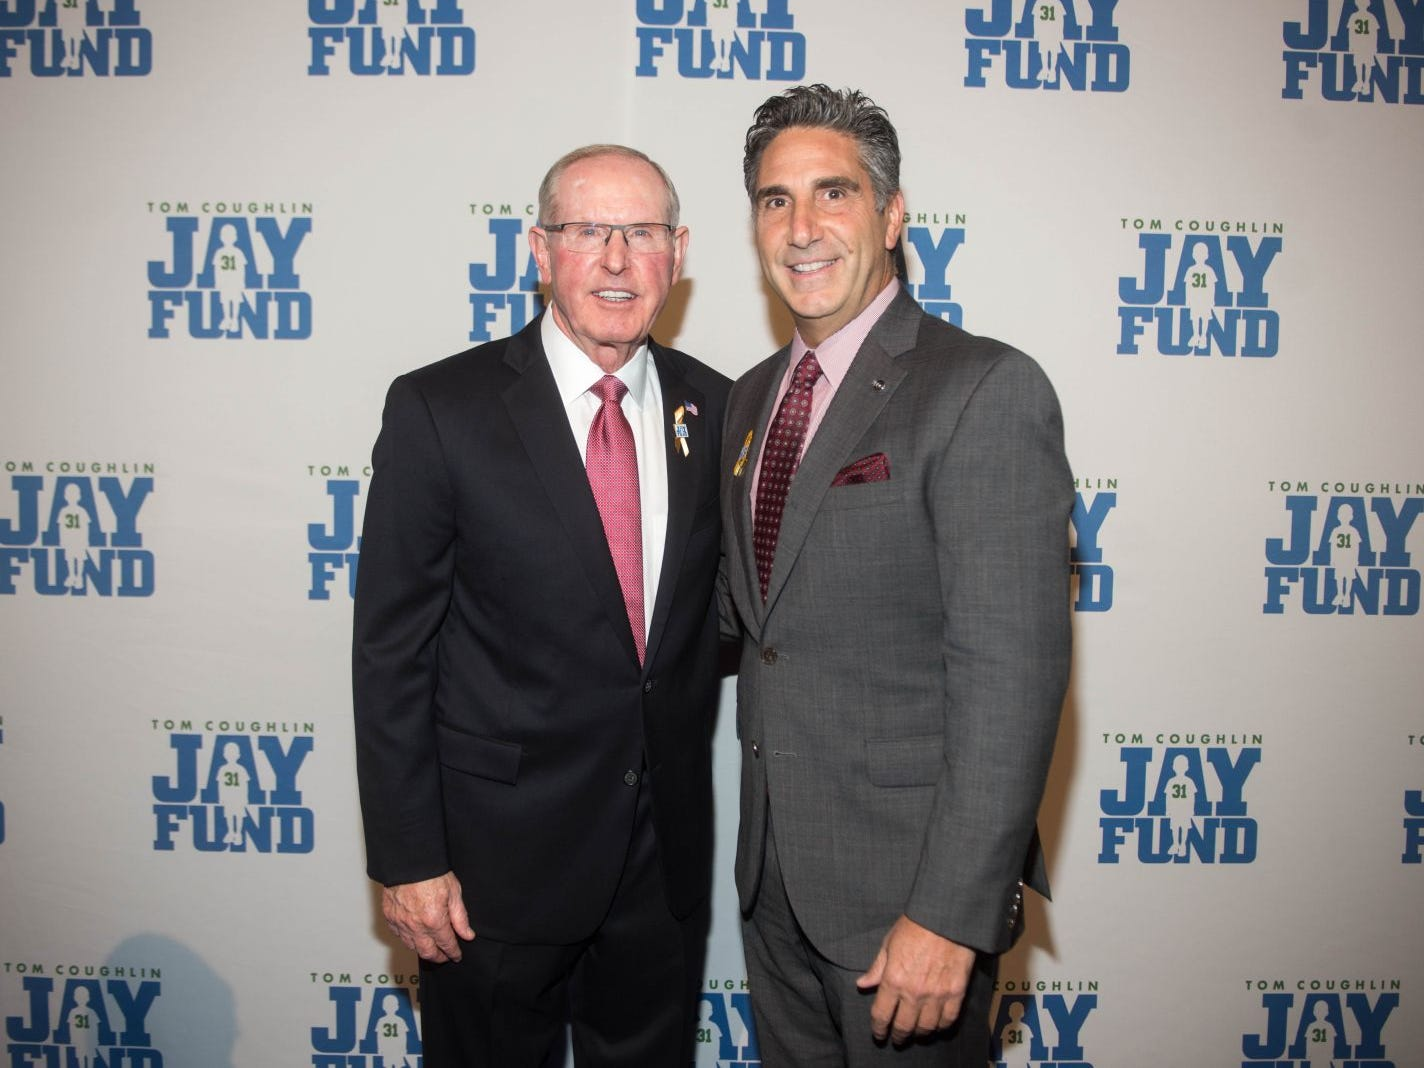 Tom Coughlin and Bob Papa. The 14th annual Jay Fund Champions for Children Gala was held at Cipriani 42nd Street. 09/21/2018